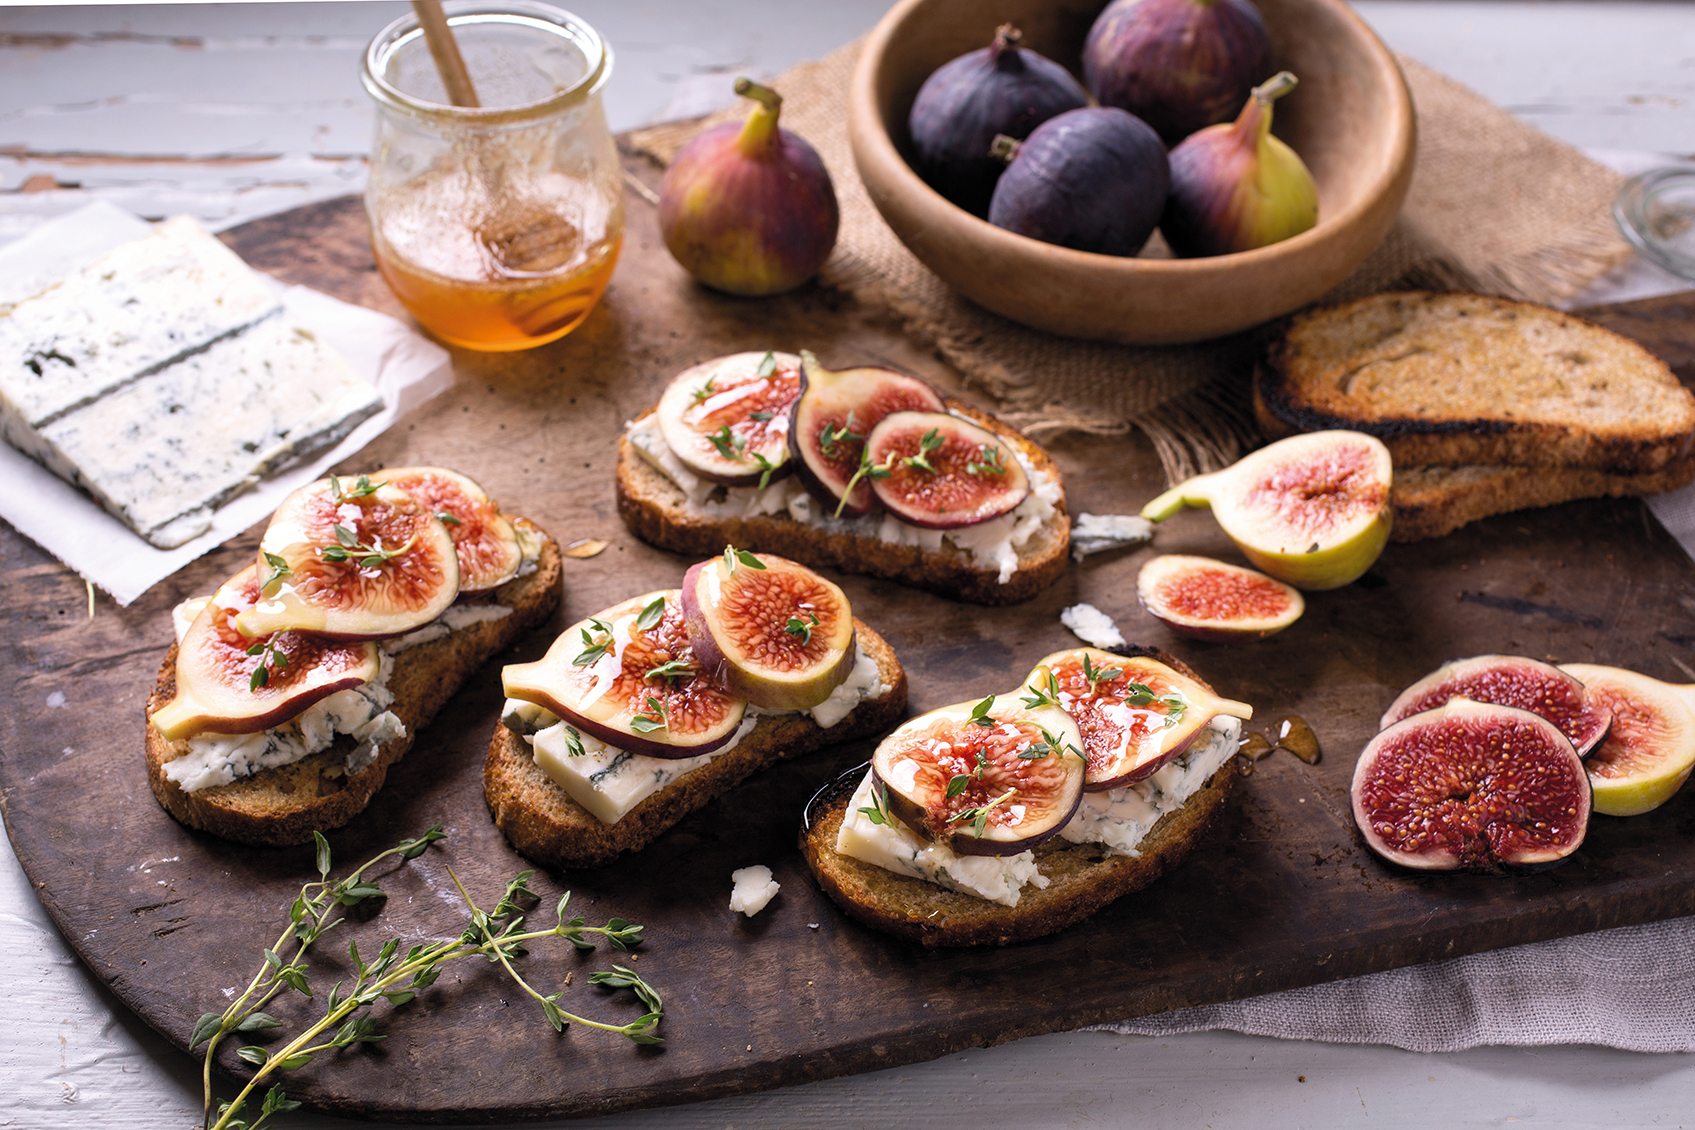 Toast sandwich with figs and Gorgonzola